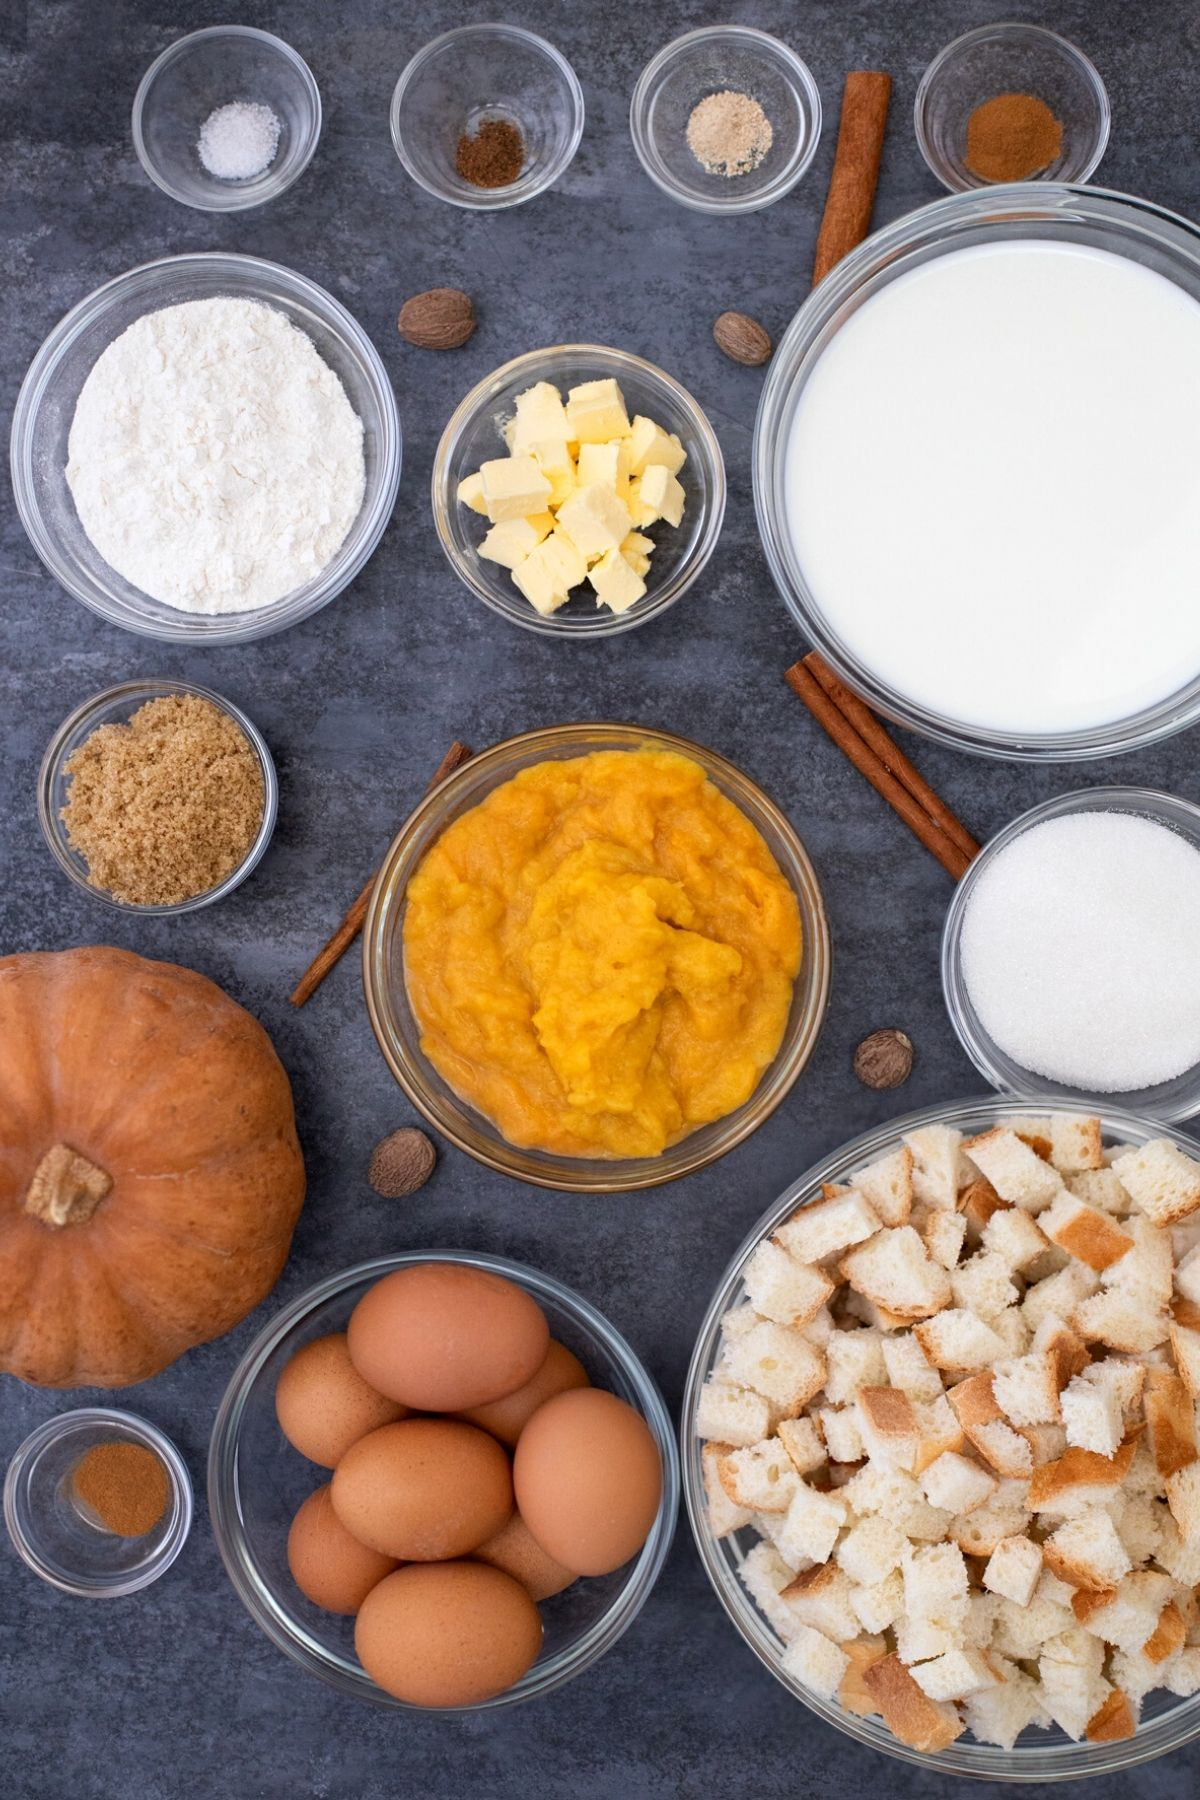 Ingredients for pumpkin spice french toast in glass bowls on gray table